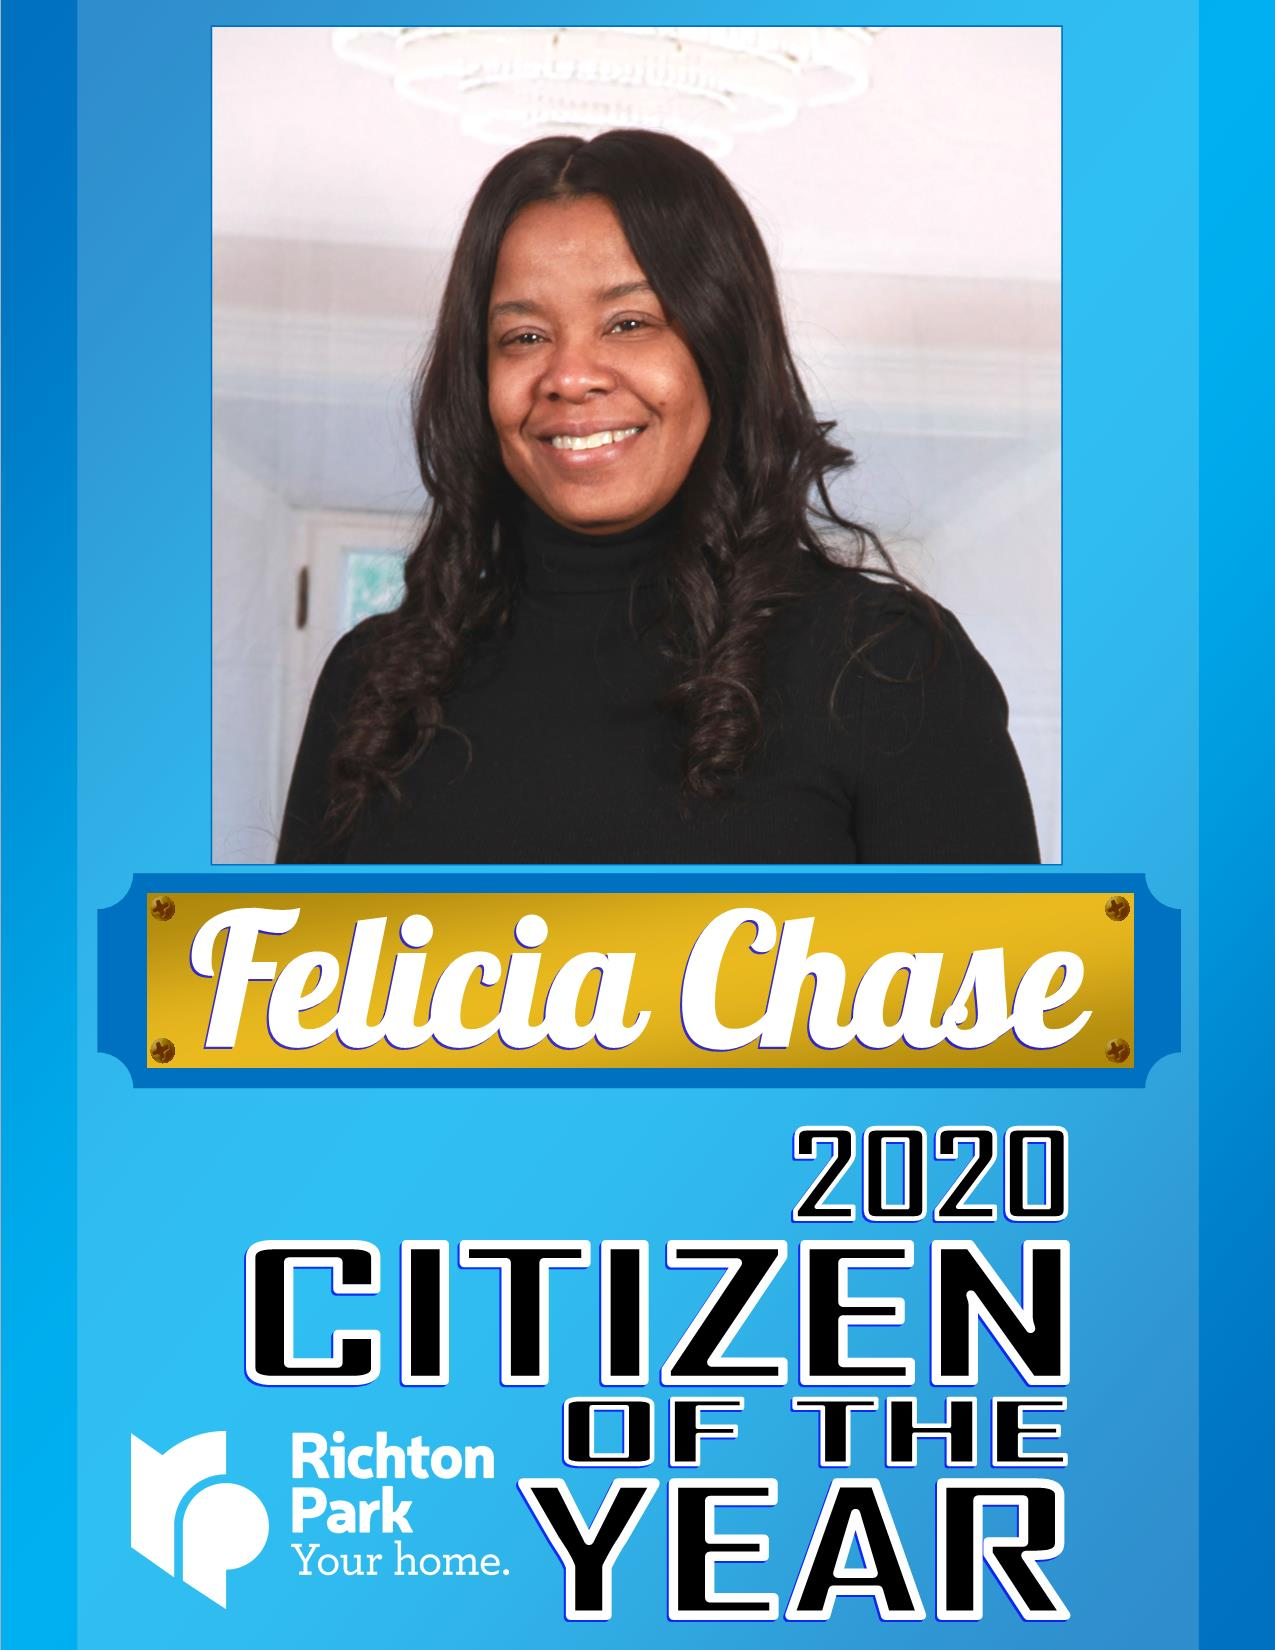 2020 Citizen if the Year - Felicia Chase